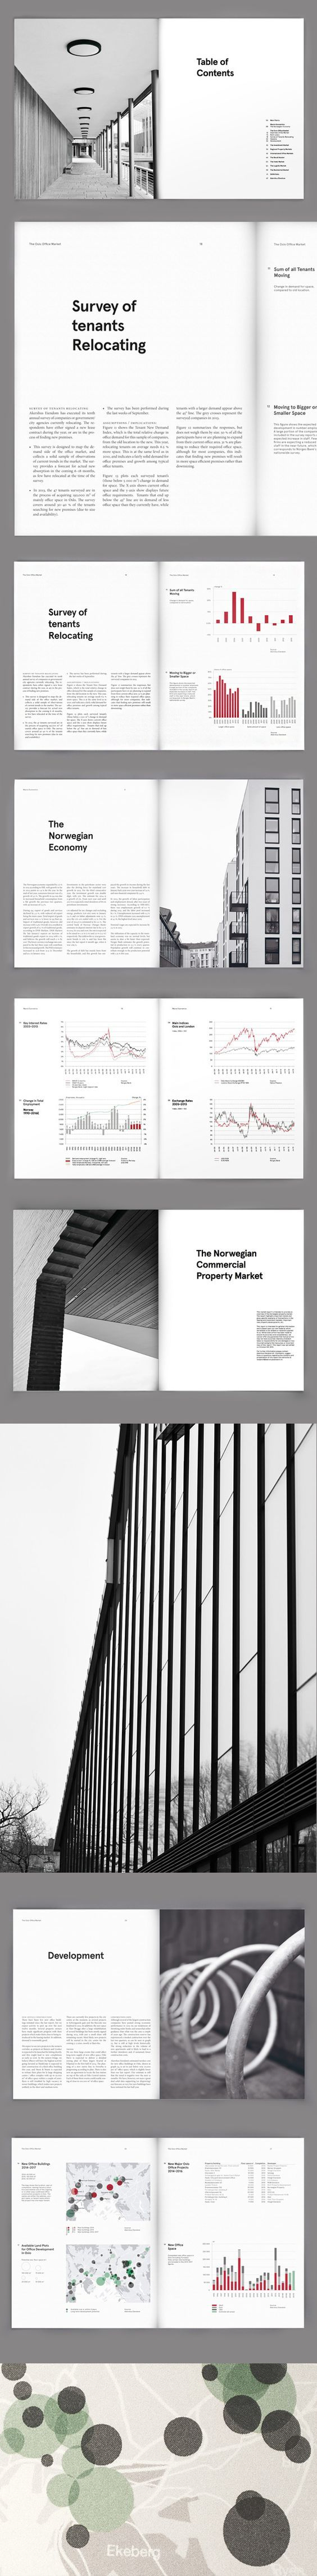 Akershus Eiendom Annual Report Layout Design | Publication and Print Design: